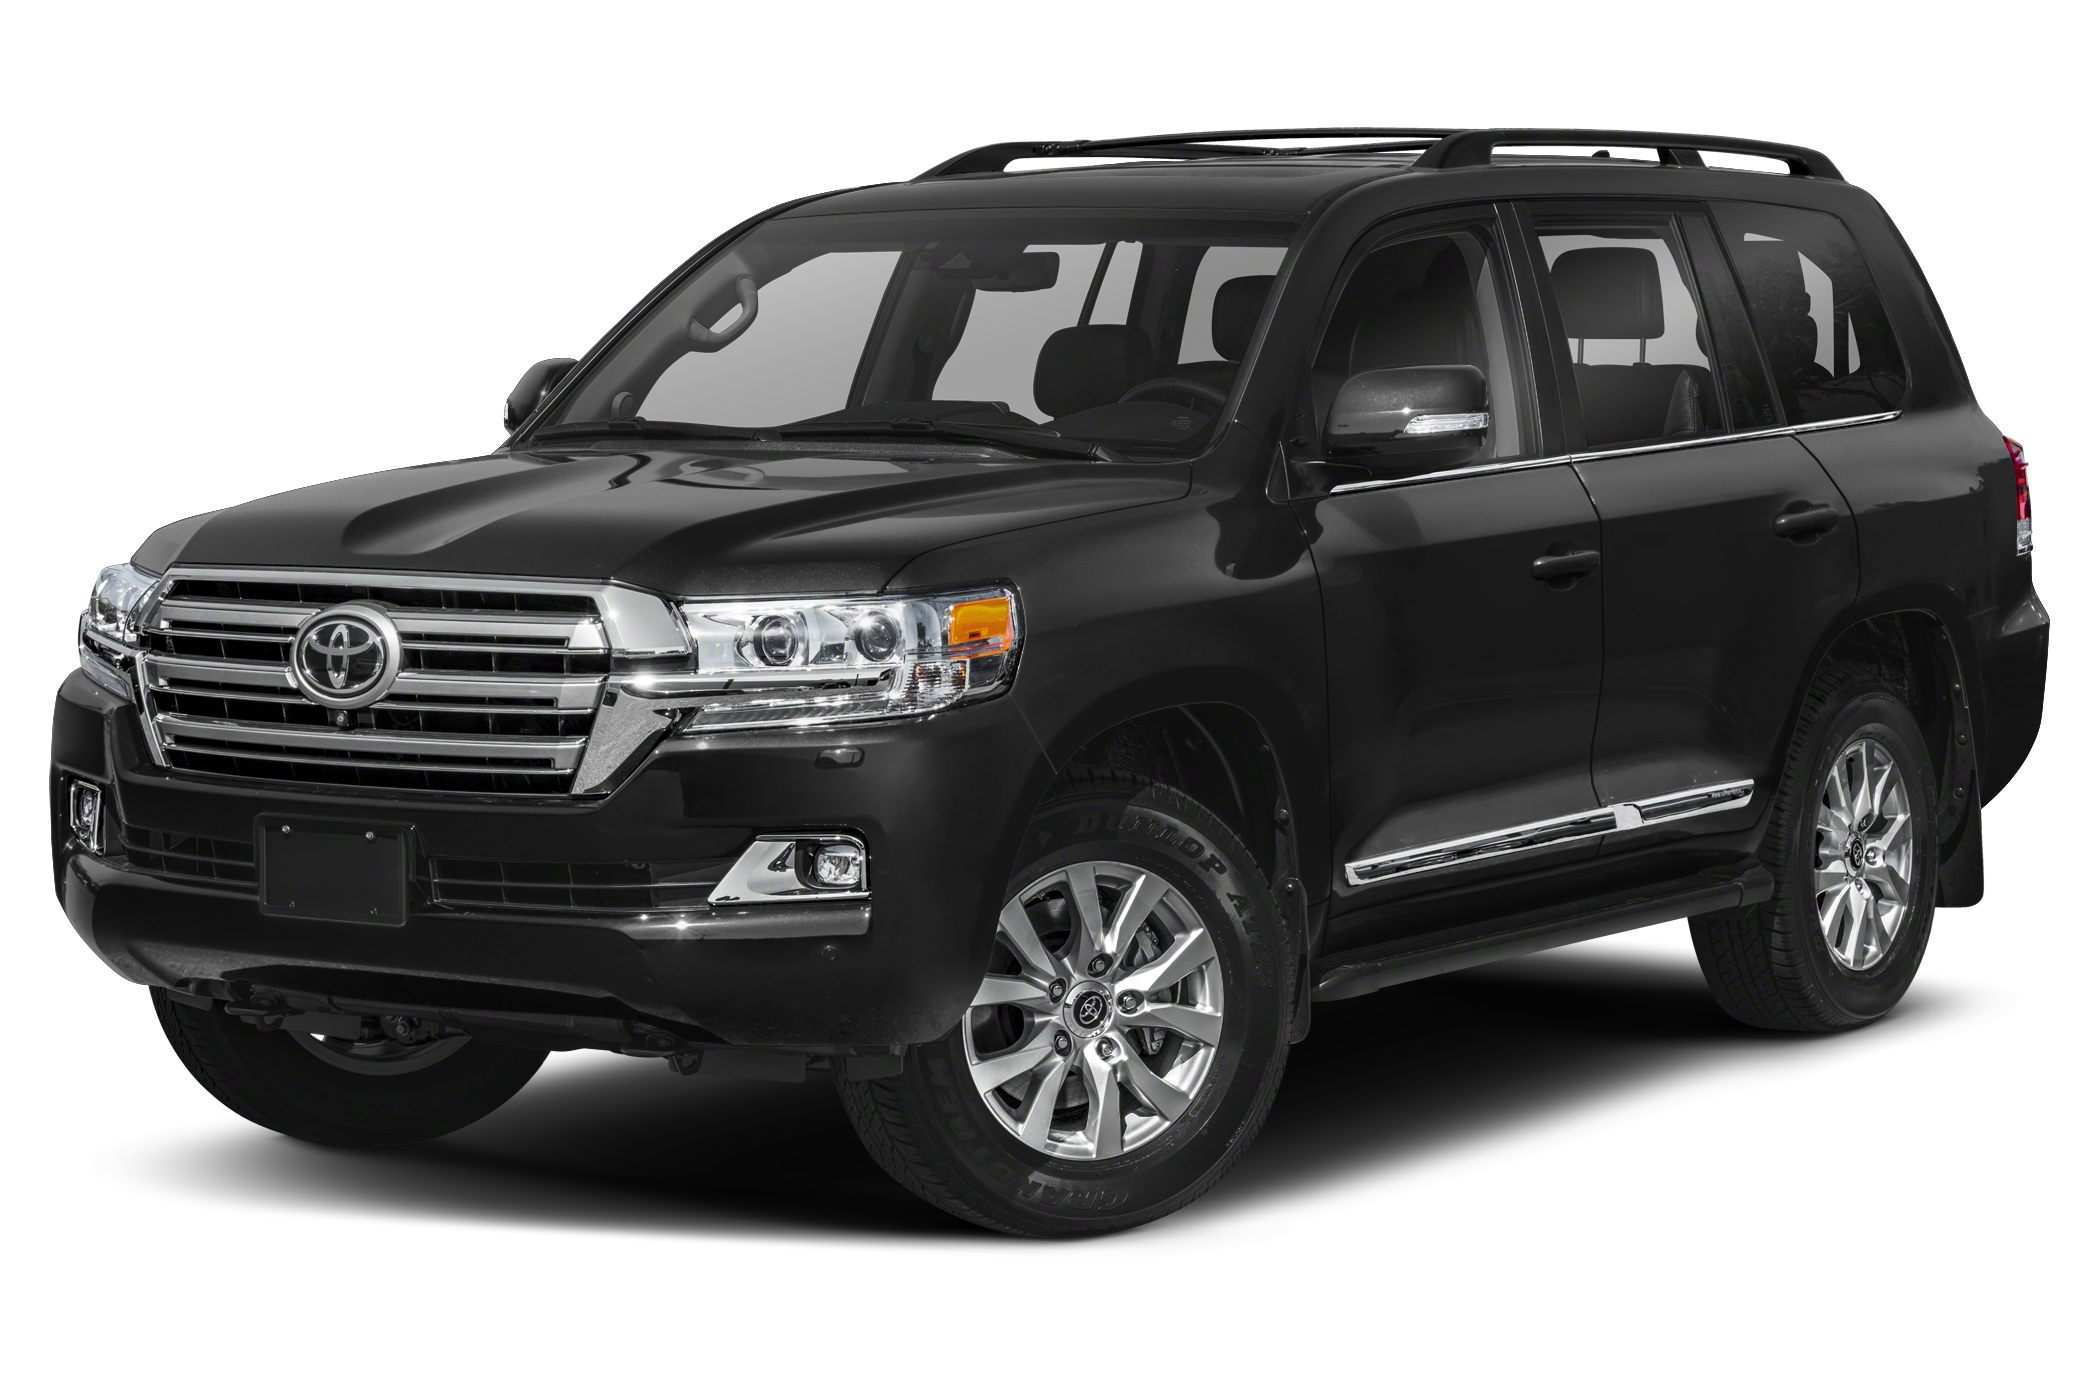 89 A Toyota Land Cruiser V8 2019 Price